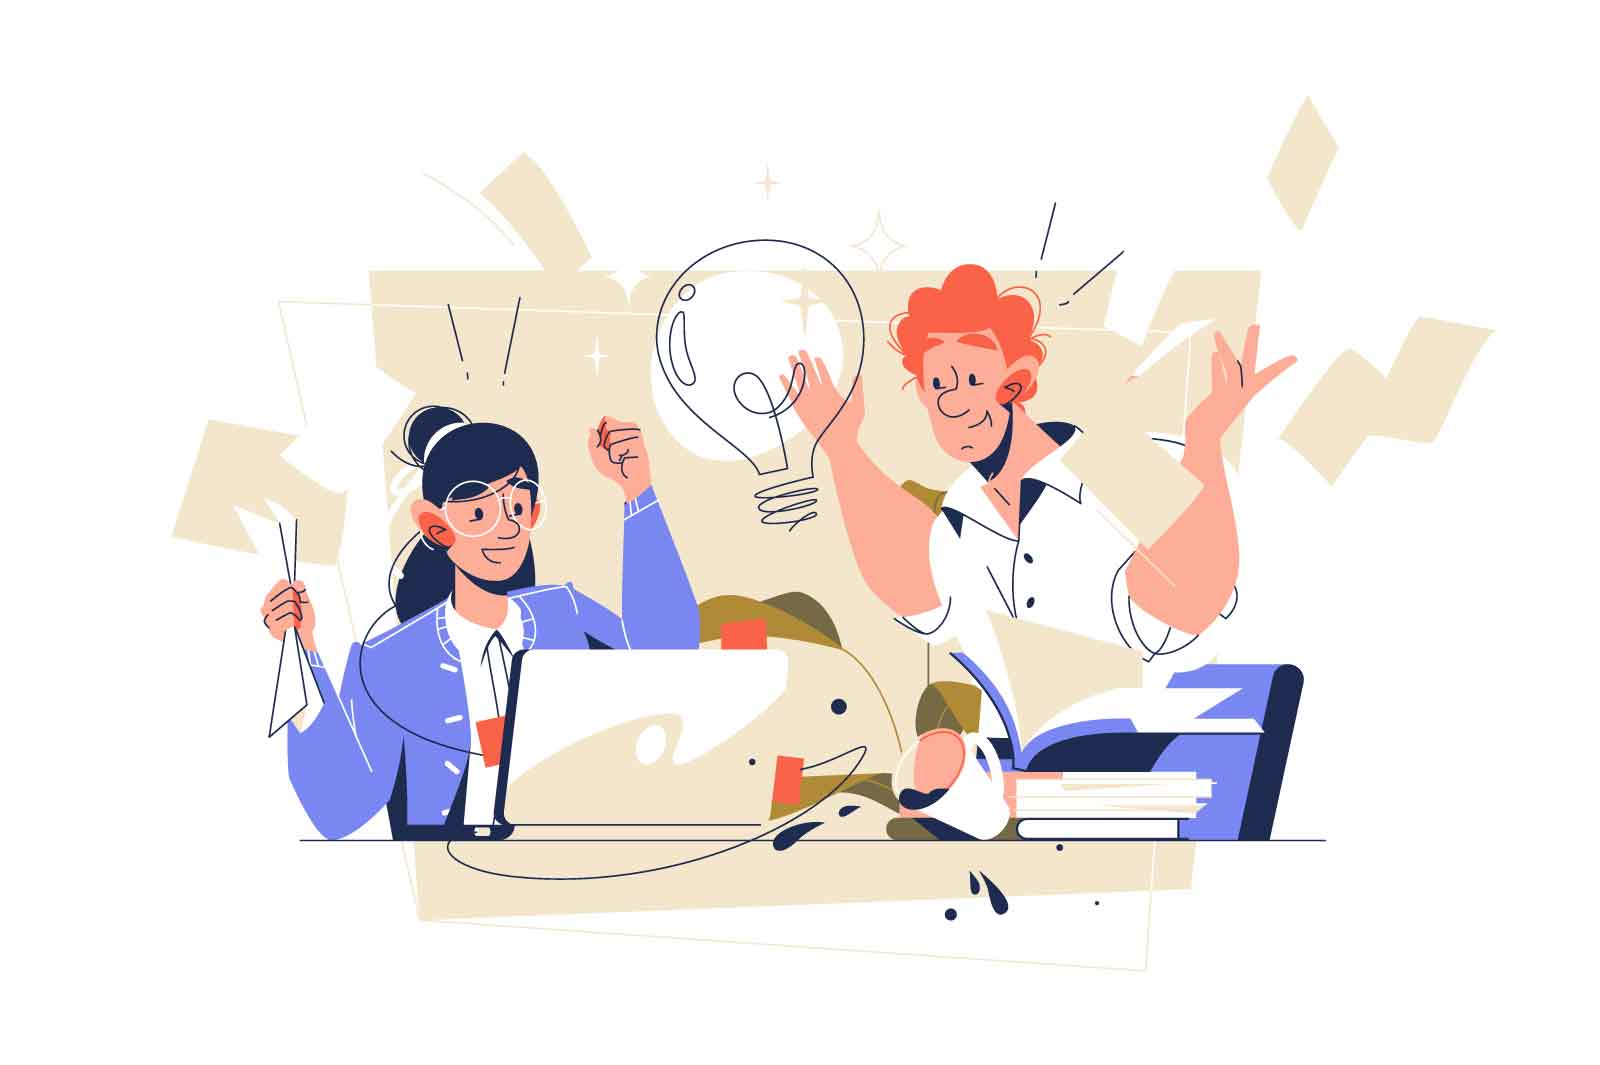 Smart guy with bright genius idea in office vector illustration. Working mess on workplace flat style. Sharing knowledge, teamwork concept